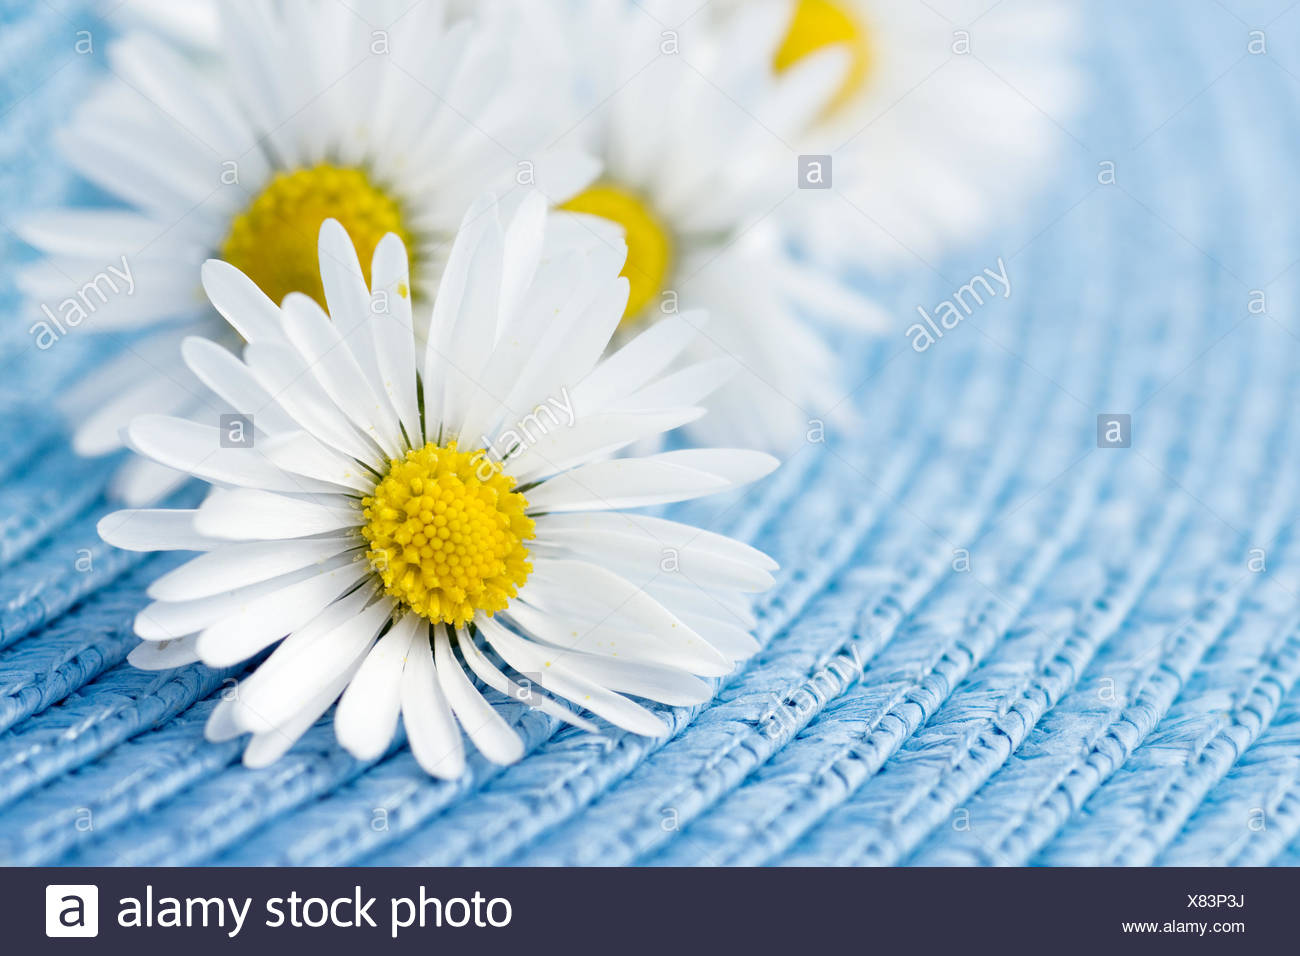 Flower Plant Flowers Marguerite Petal Daisy Camomile Blue Tea Health